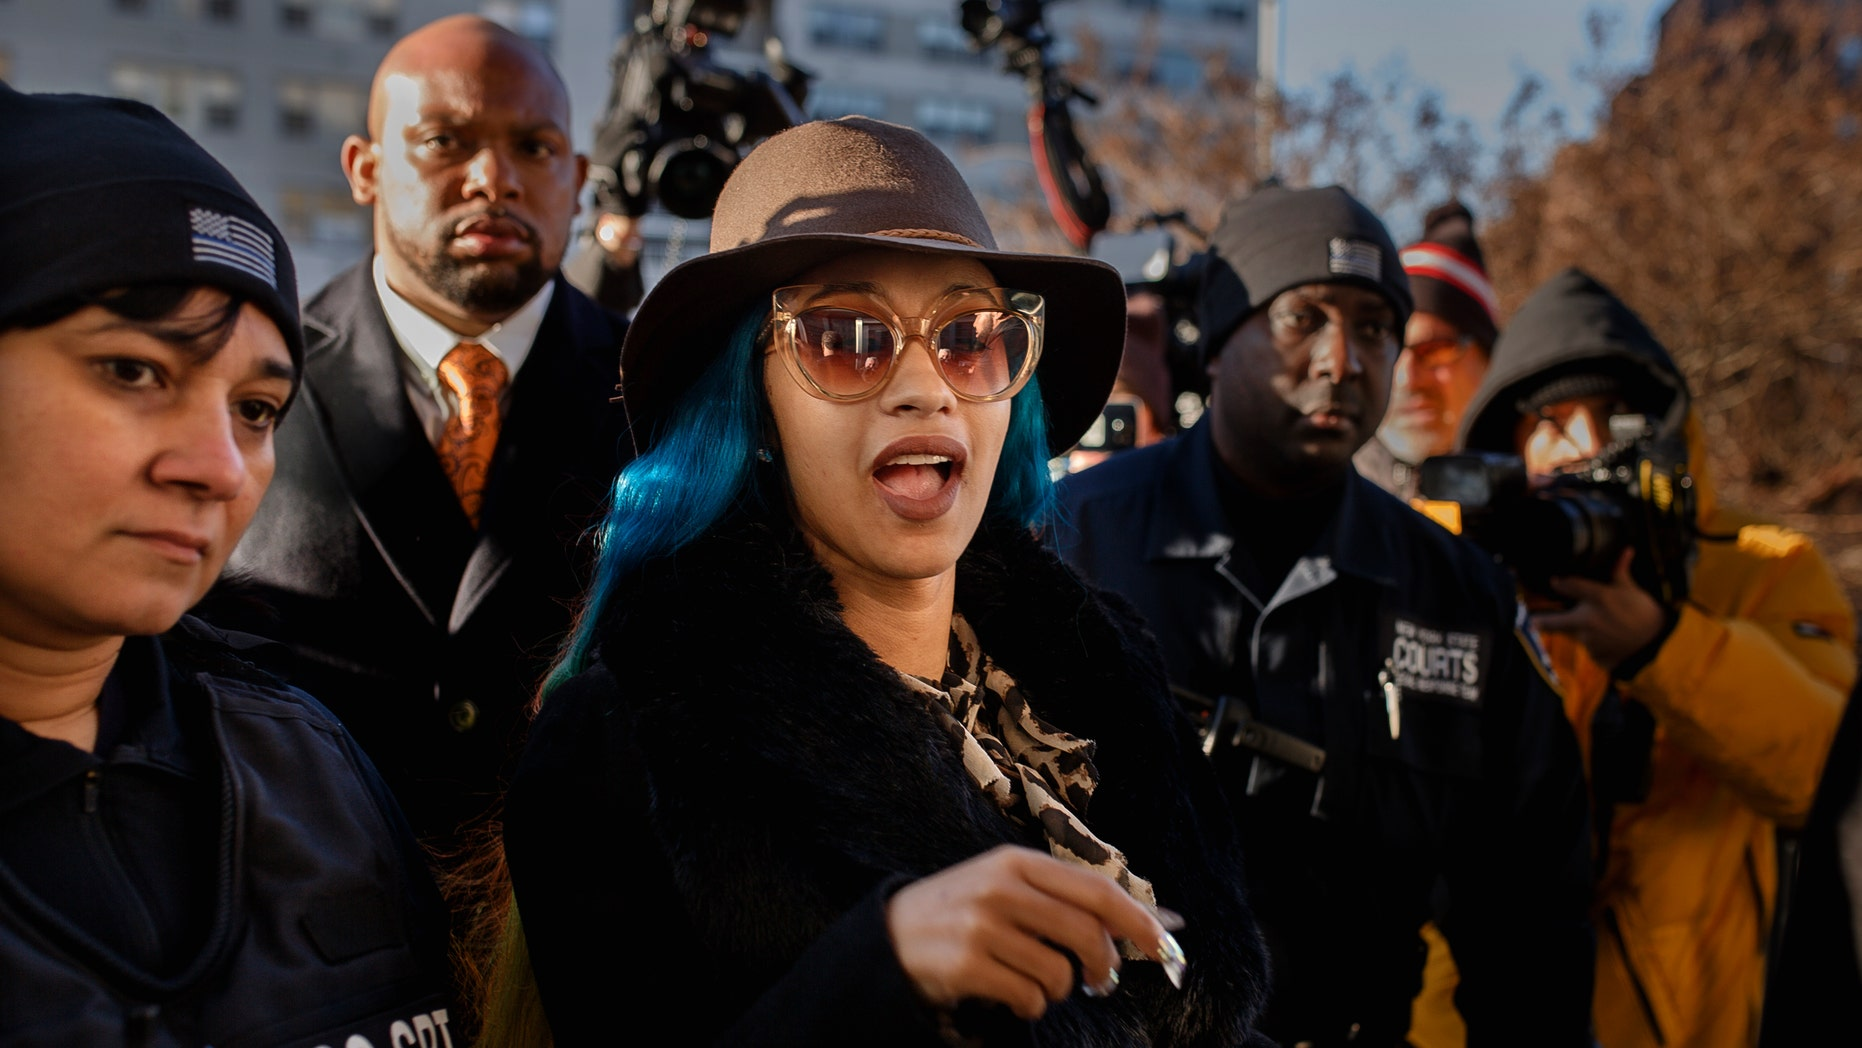 Judge orders rapper Cardi B to stay away from victims in brawl